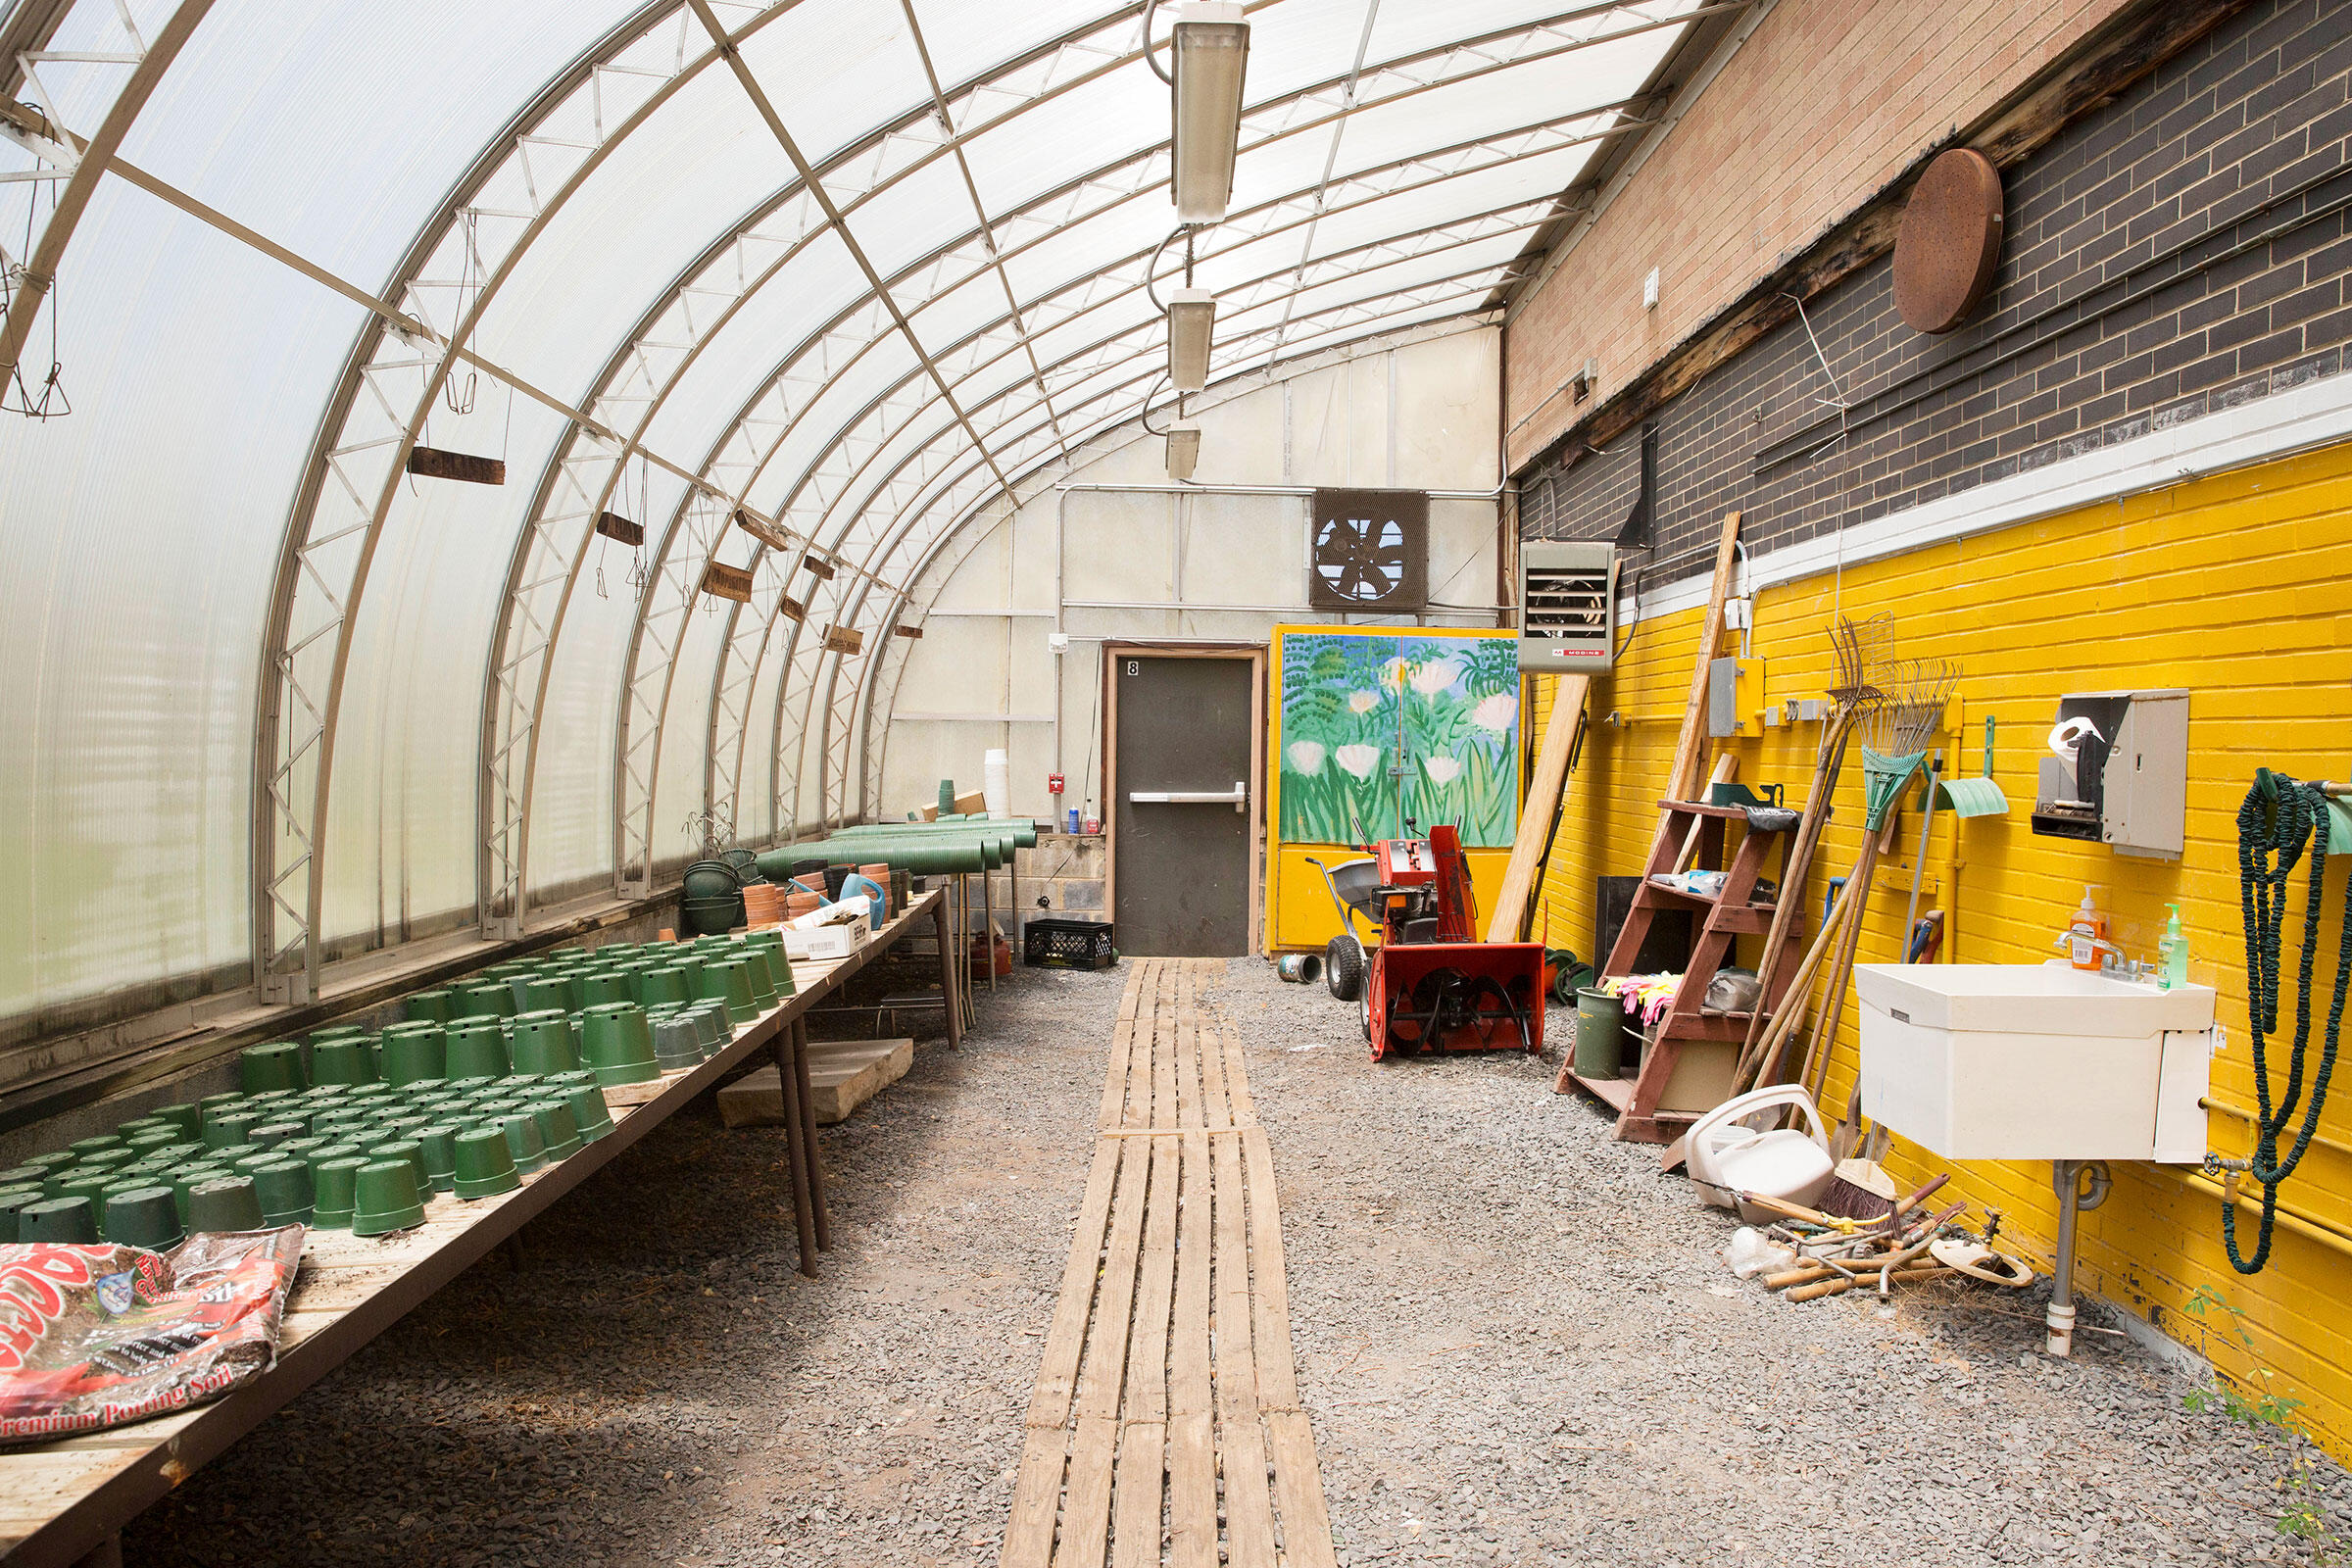 The greenhouse at the Roosevelt Alternative School needed a fresh coat of paint, among other things. Local grants helped fund an overhaul, and by this spring the structure was ready for plantings again. Rachel Wisniewski